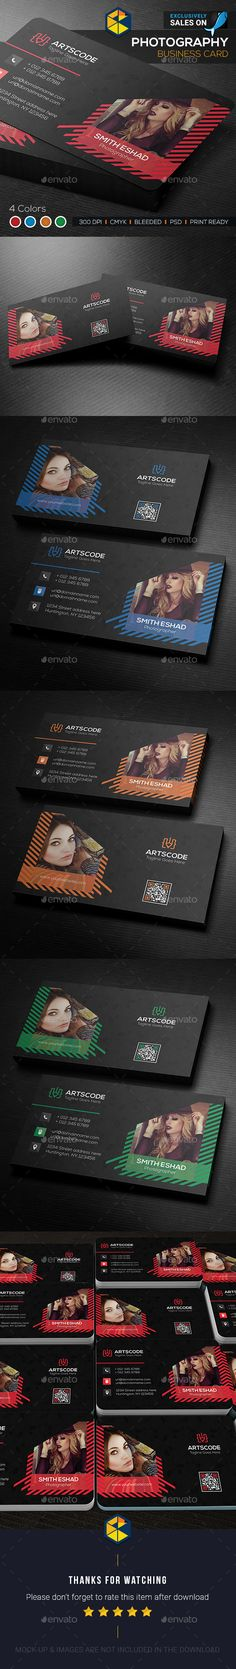 Photography Business Card Template PSD. Download here: https://graphicriver.net/item/photography-business-card/17344396?ref=ksioks